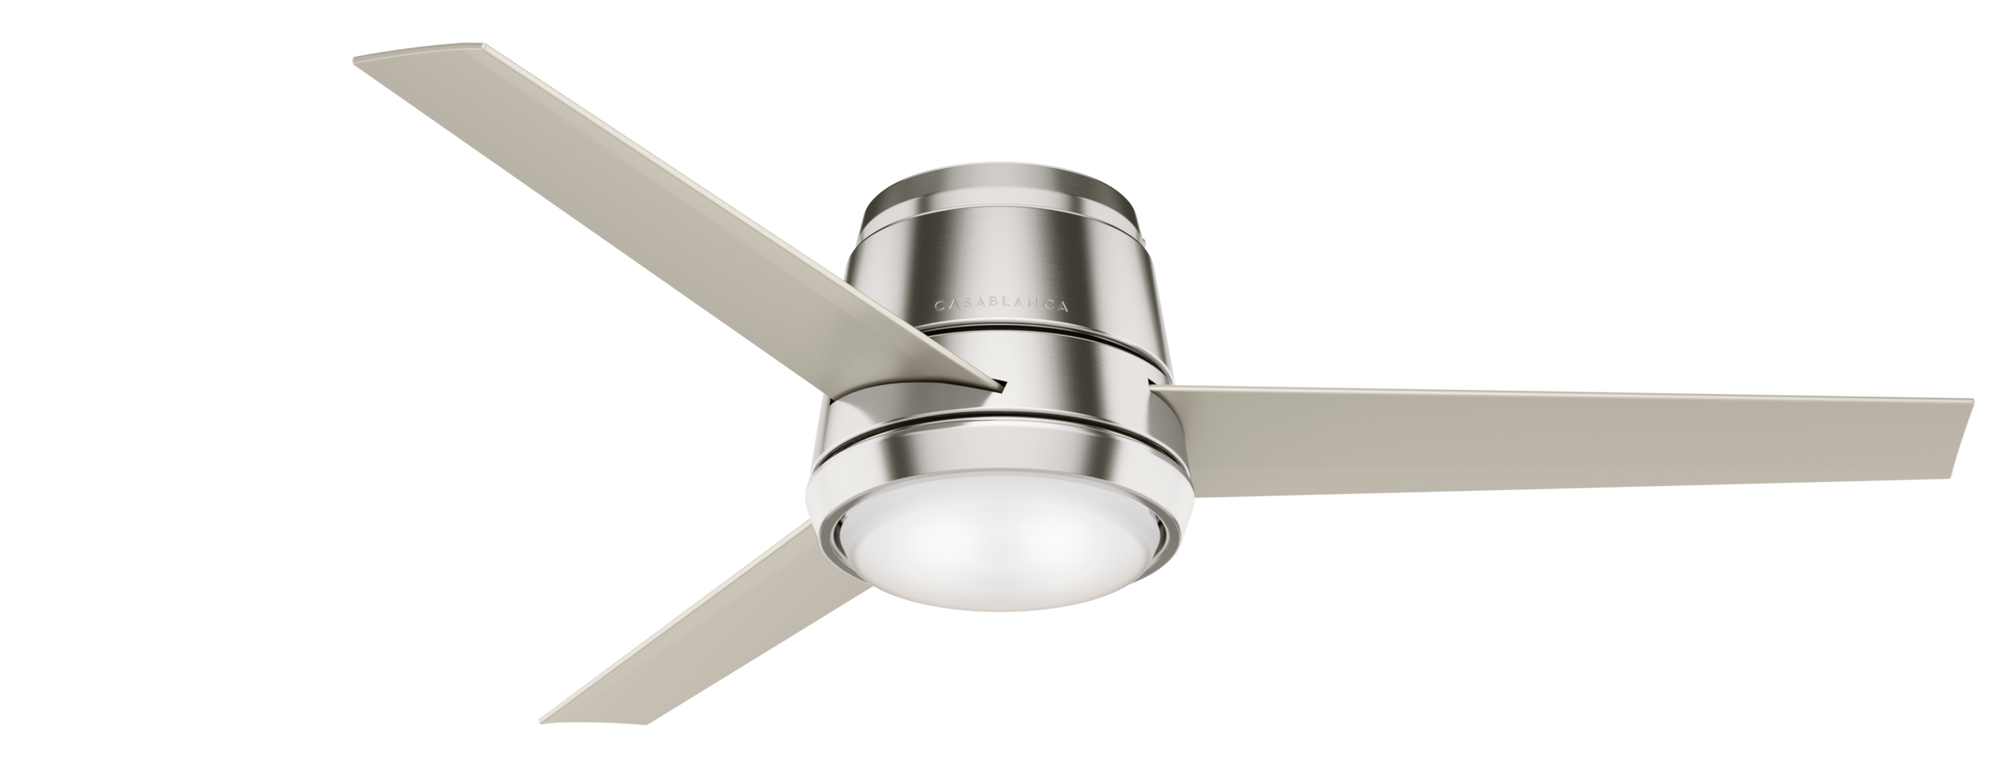 Casablanca Indoor Low Profile Commodus Ceiling Fan with LED LightJD inch, Brushed Nickel/Chrome, 59573